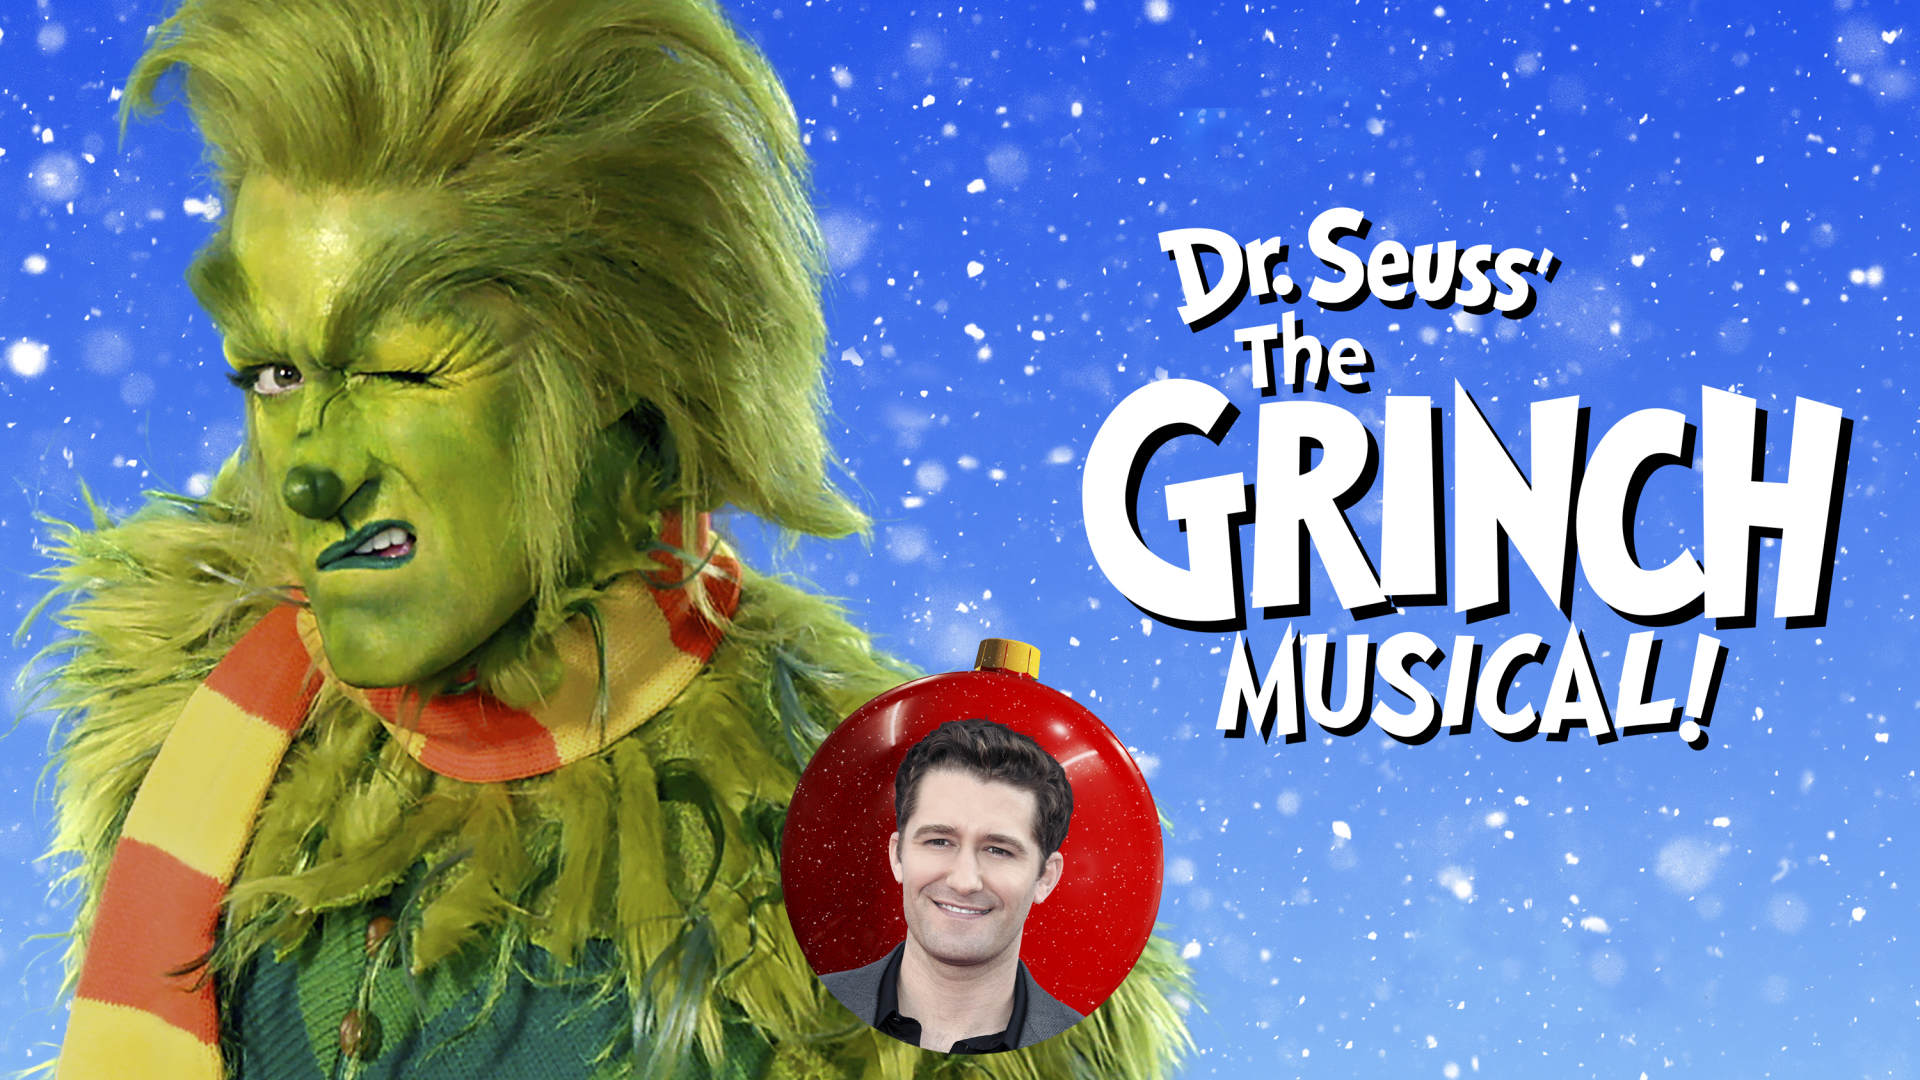 Dr Seuss The Grinch the Musical